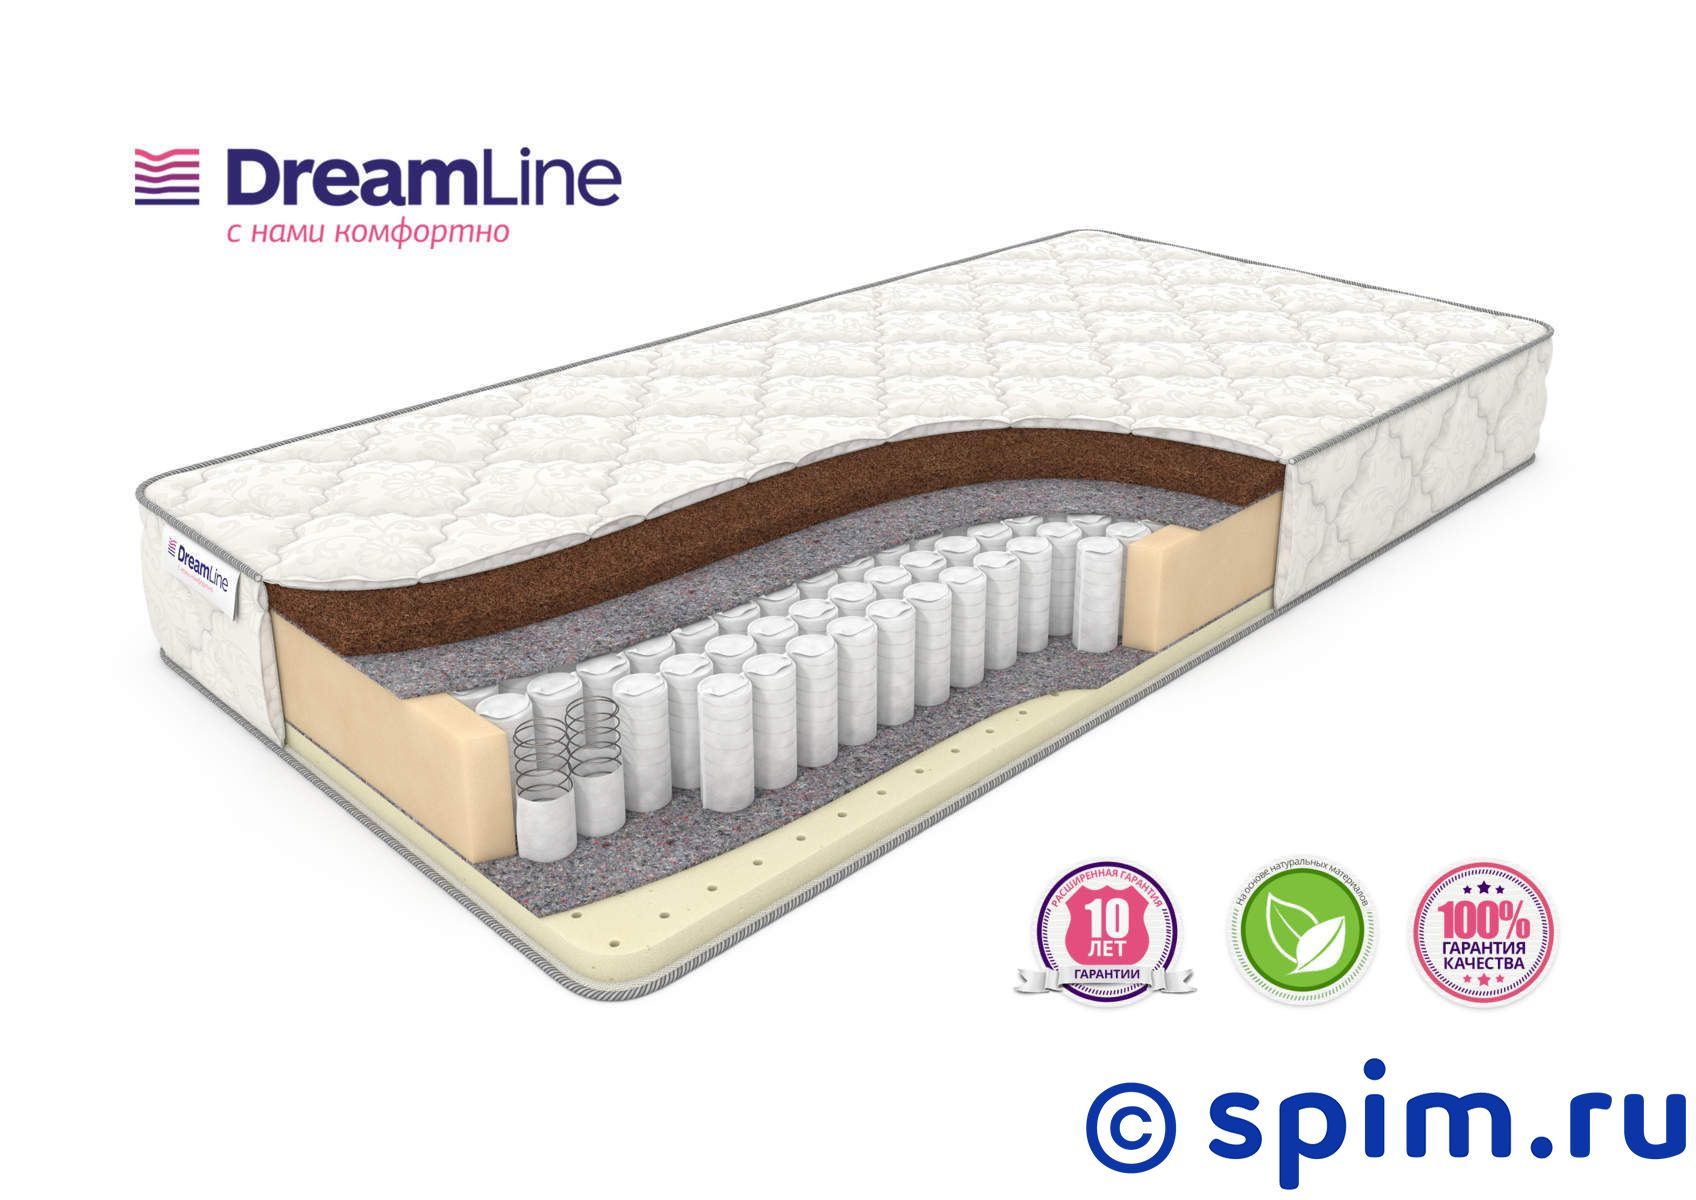 Матрас DreamLine SleepDream Tfk 180х195 см матрас dreamline sleepdream medium tfk 140х200 см